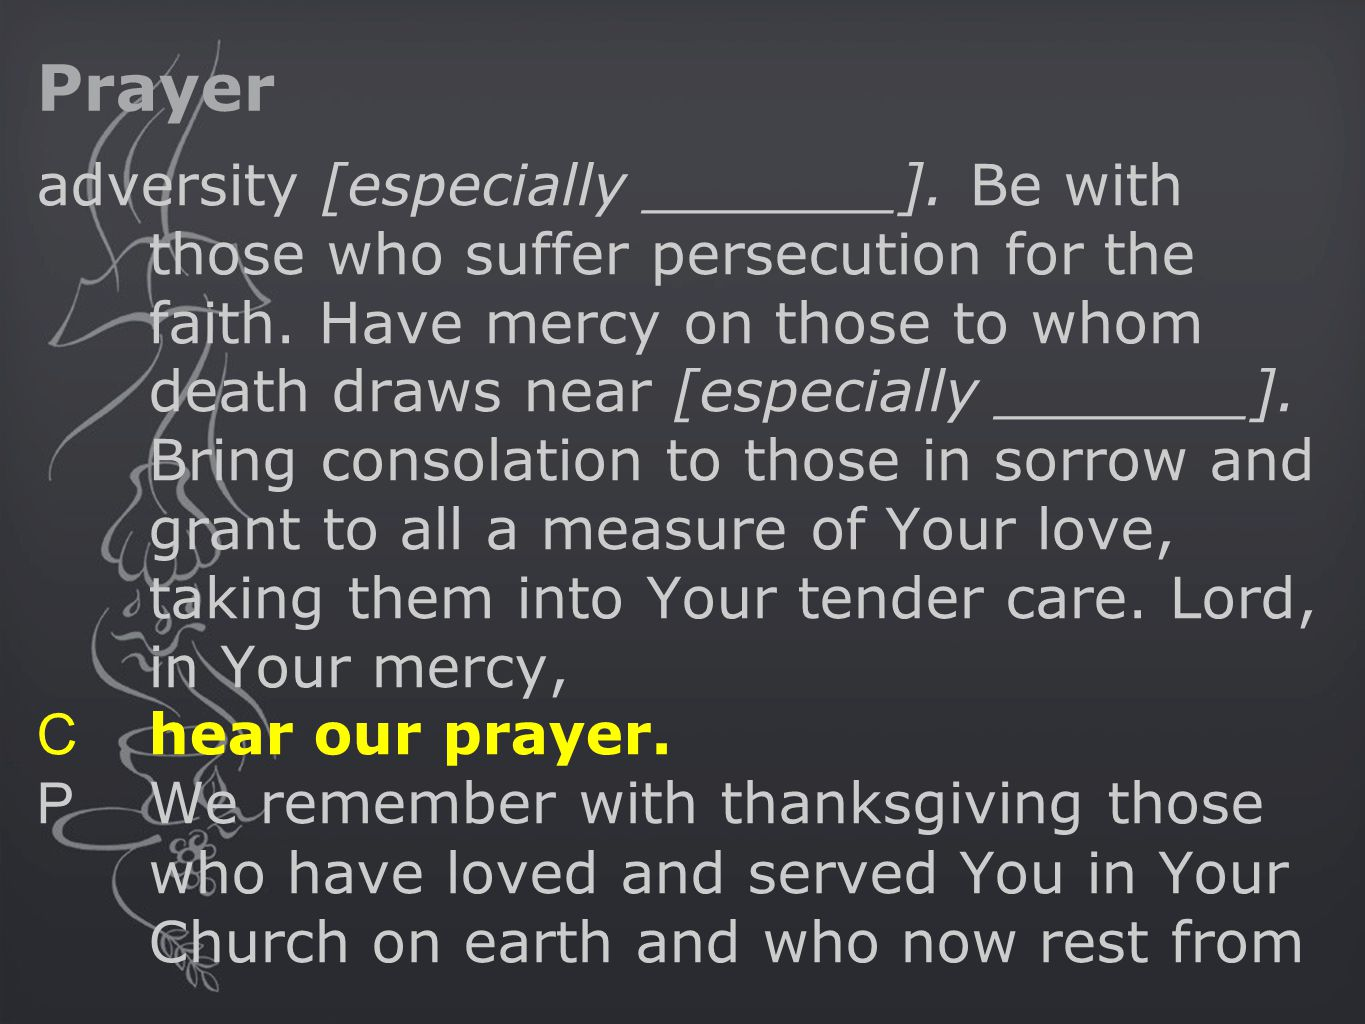 Prayer adversity [especially _______]. Be with those who suffer persecution for the faith.